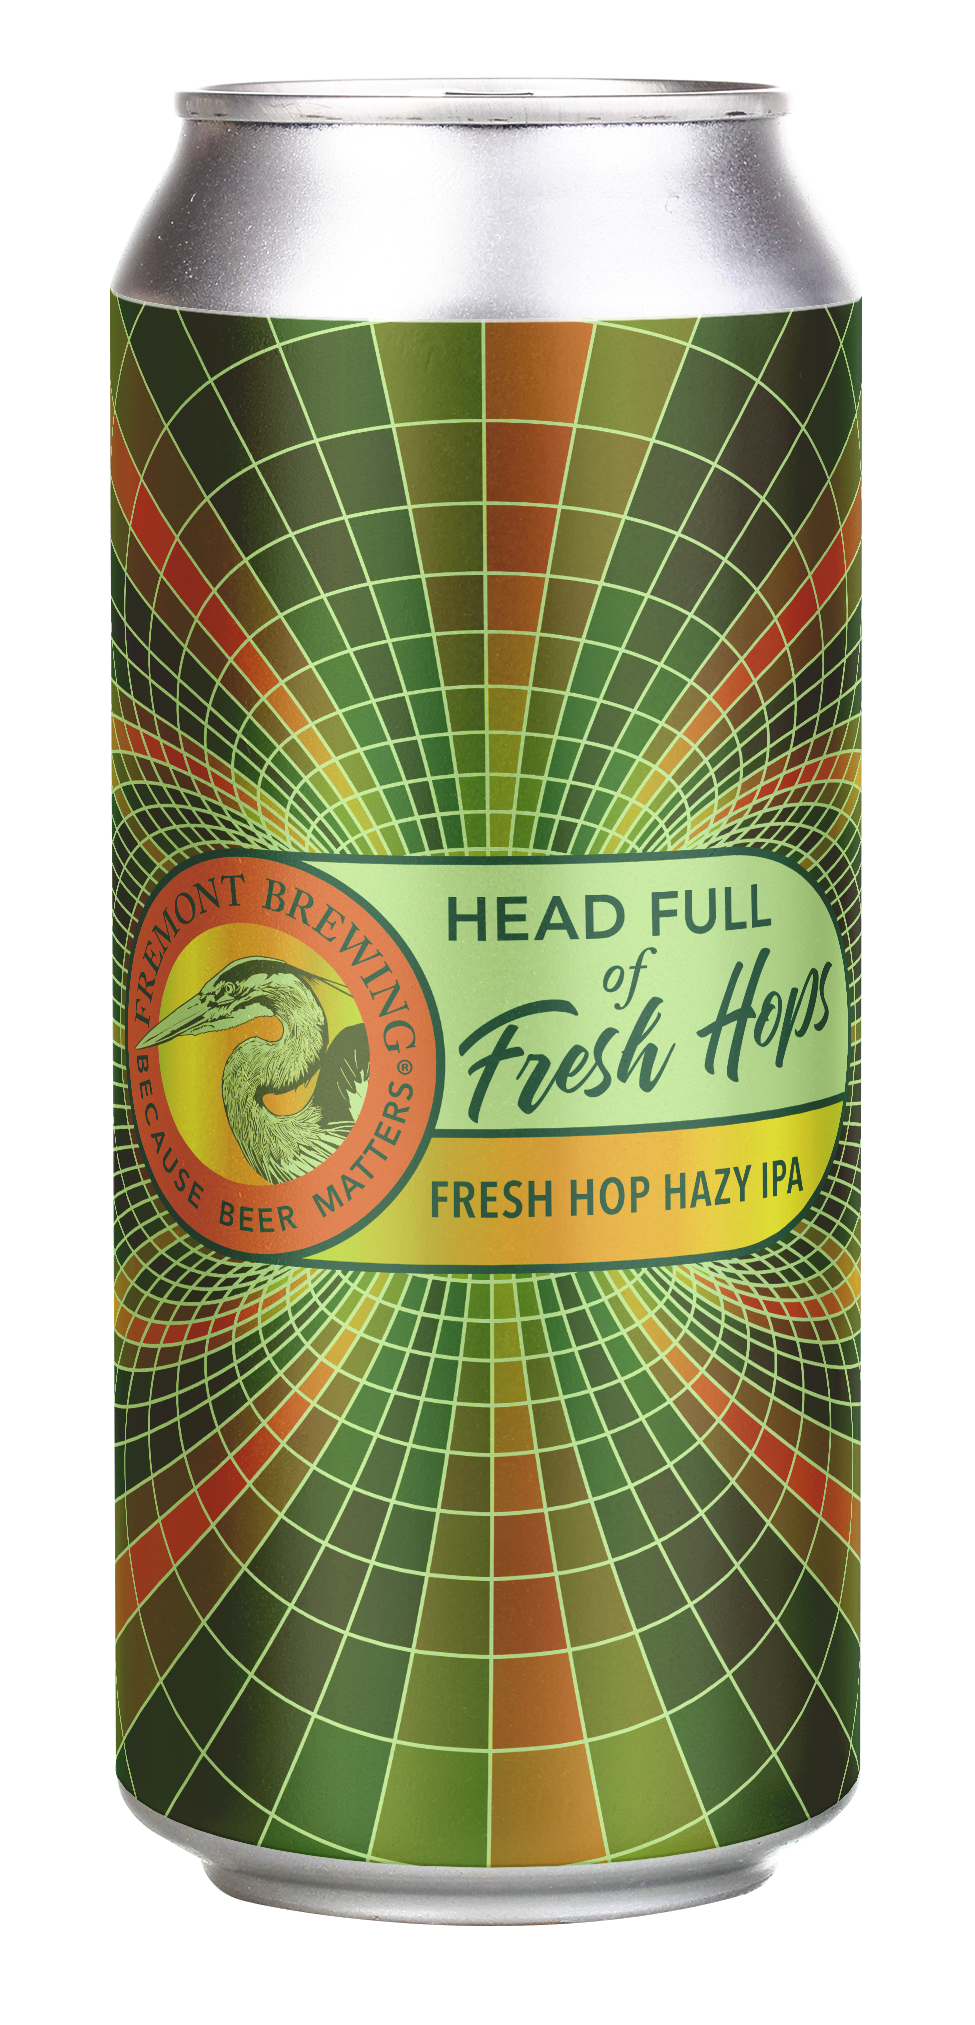 Head Full of Fresh Hops 16oz can